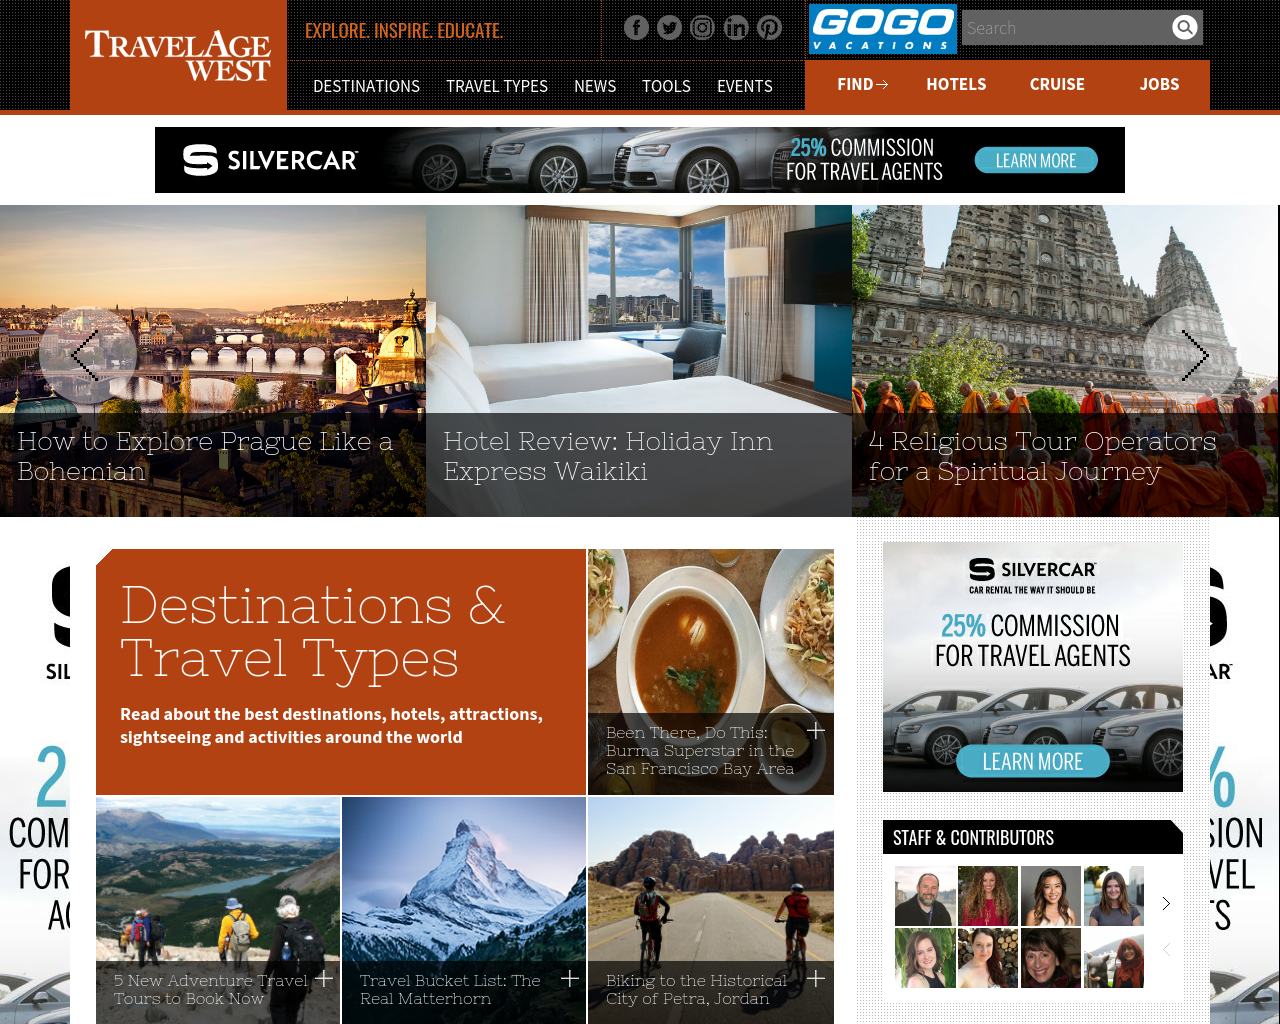 TravelAge-West-Advertising-Reviews-Pricing